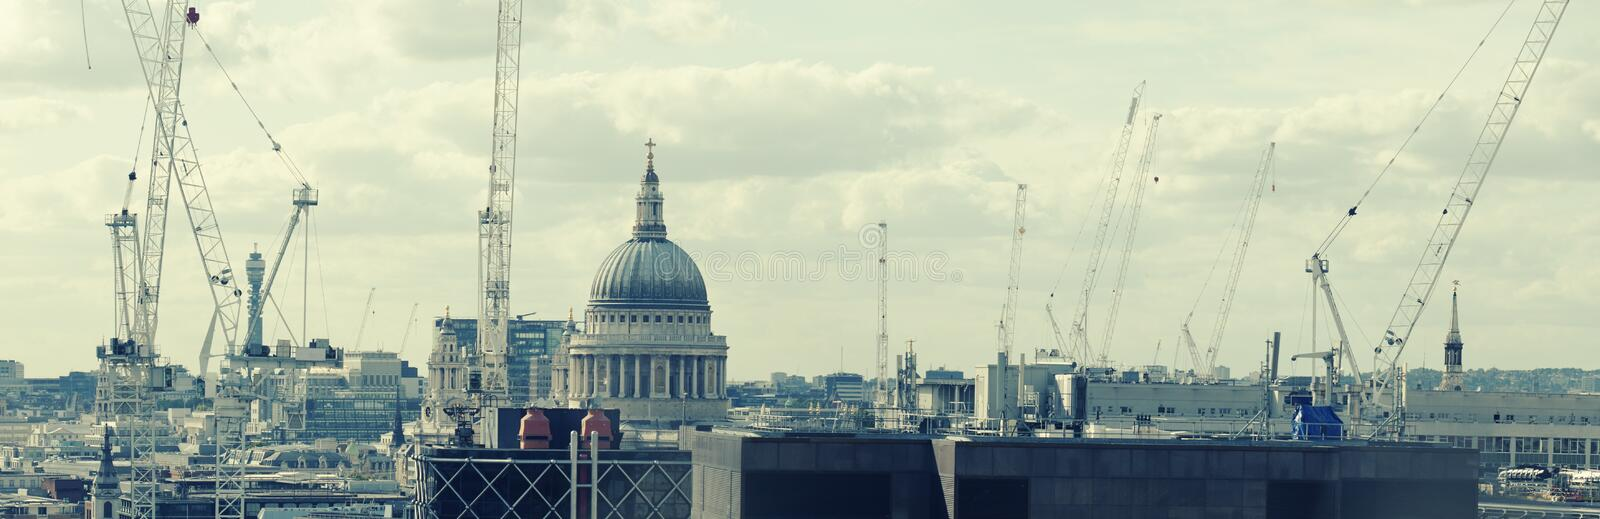 Download Construction in London stock image. Image of development - 11185295